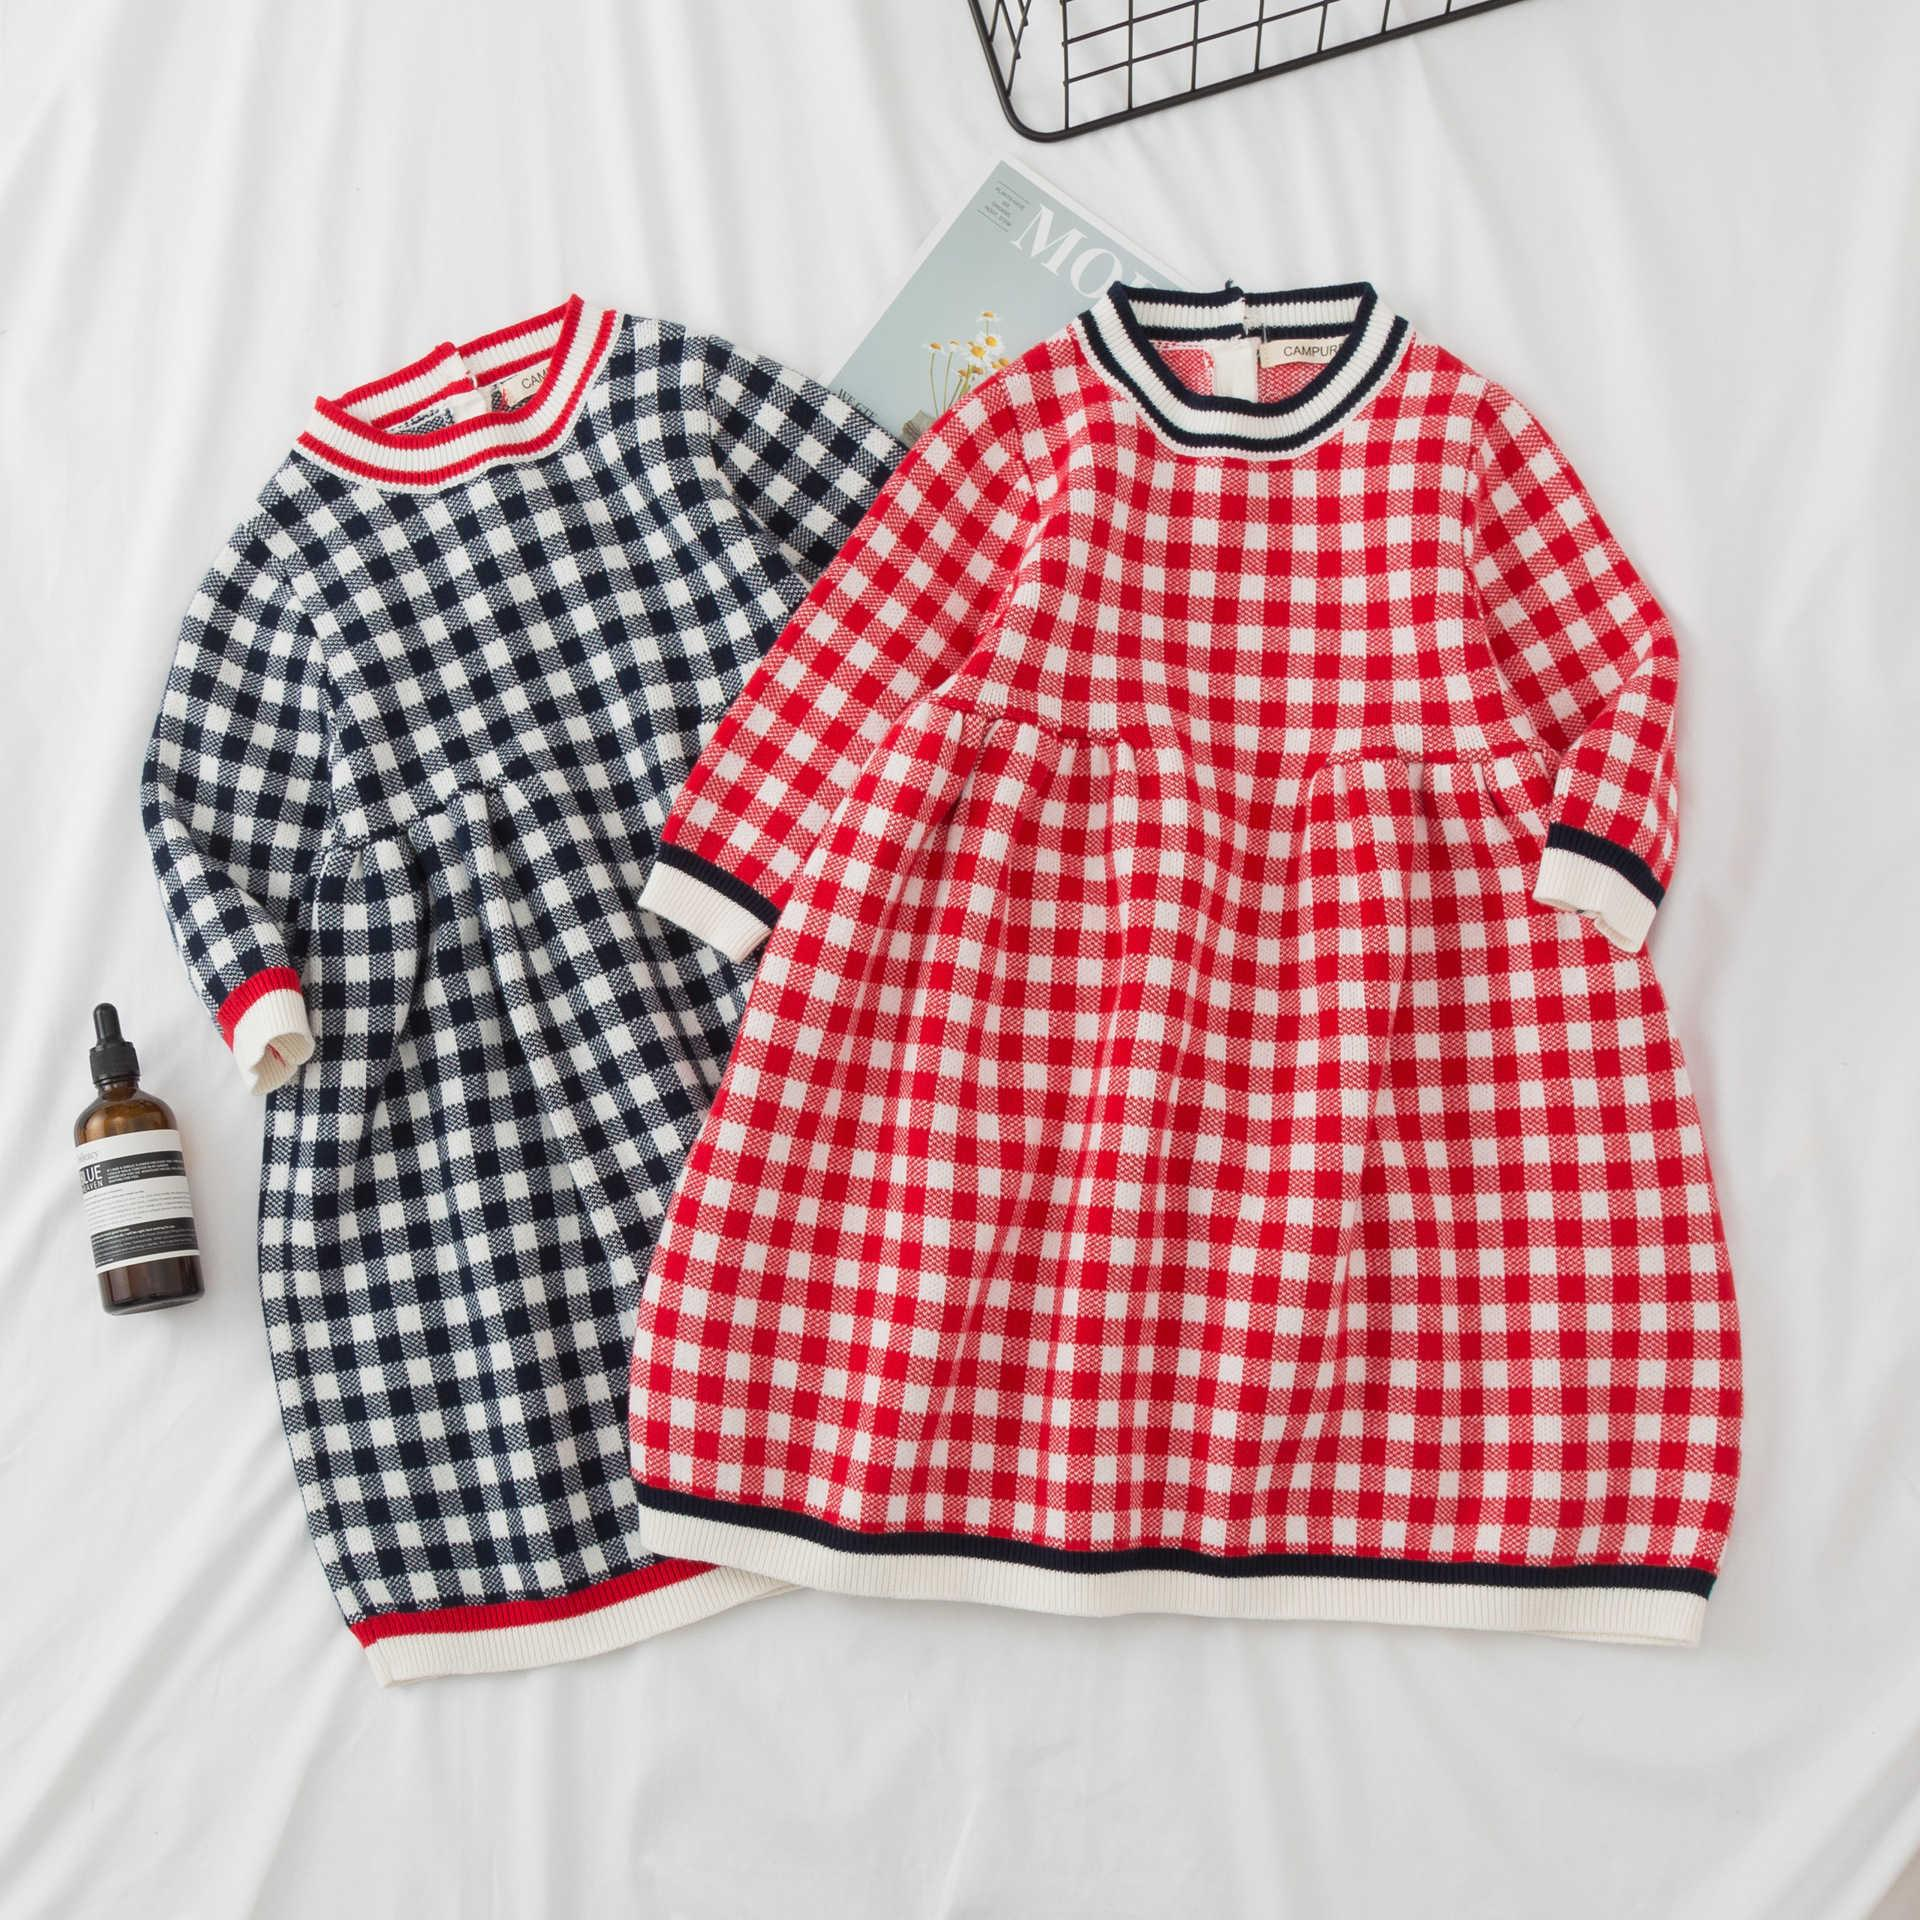 617a1cec8309 2019 Autumn Winter Girls Preppy Knitted Sweater Baby Girl Dress Girls Plaid  Dresses For Christmas Birthday Party Baby Girl Clothes From Westbit18, ...